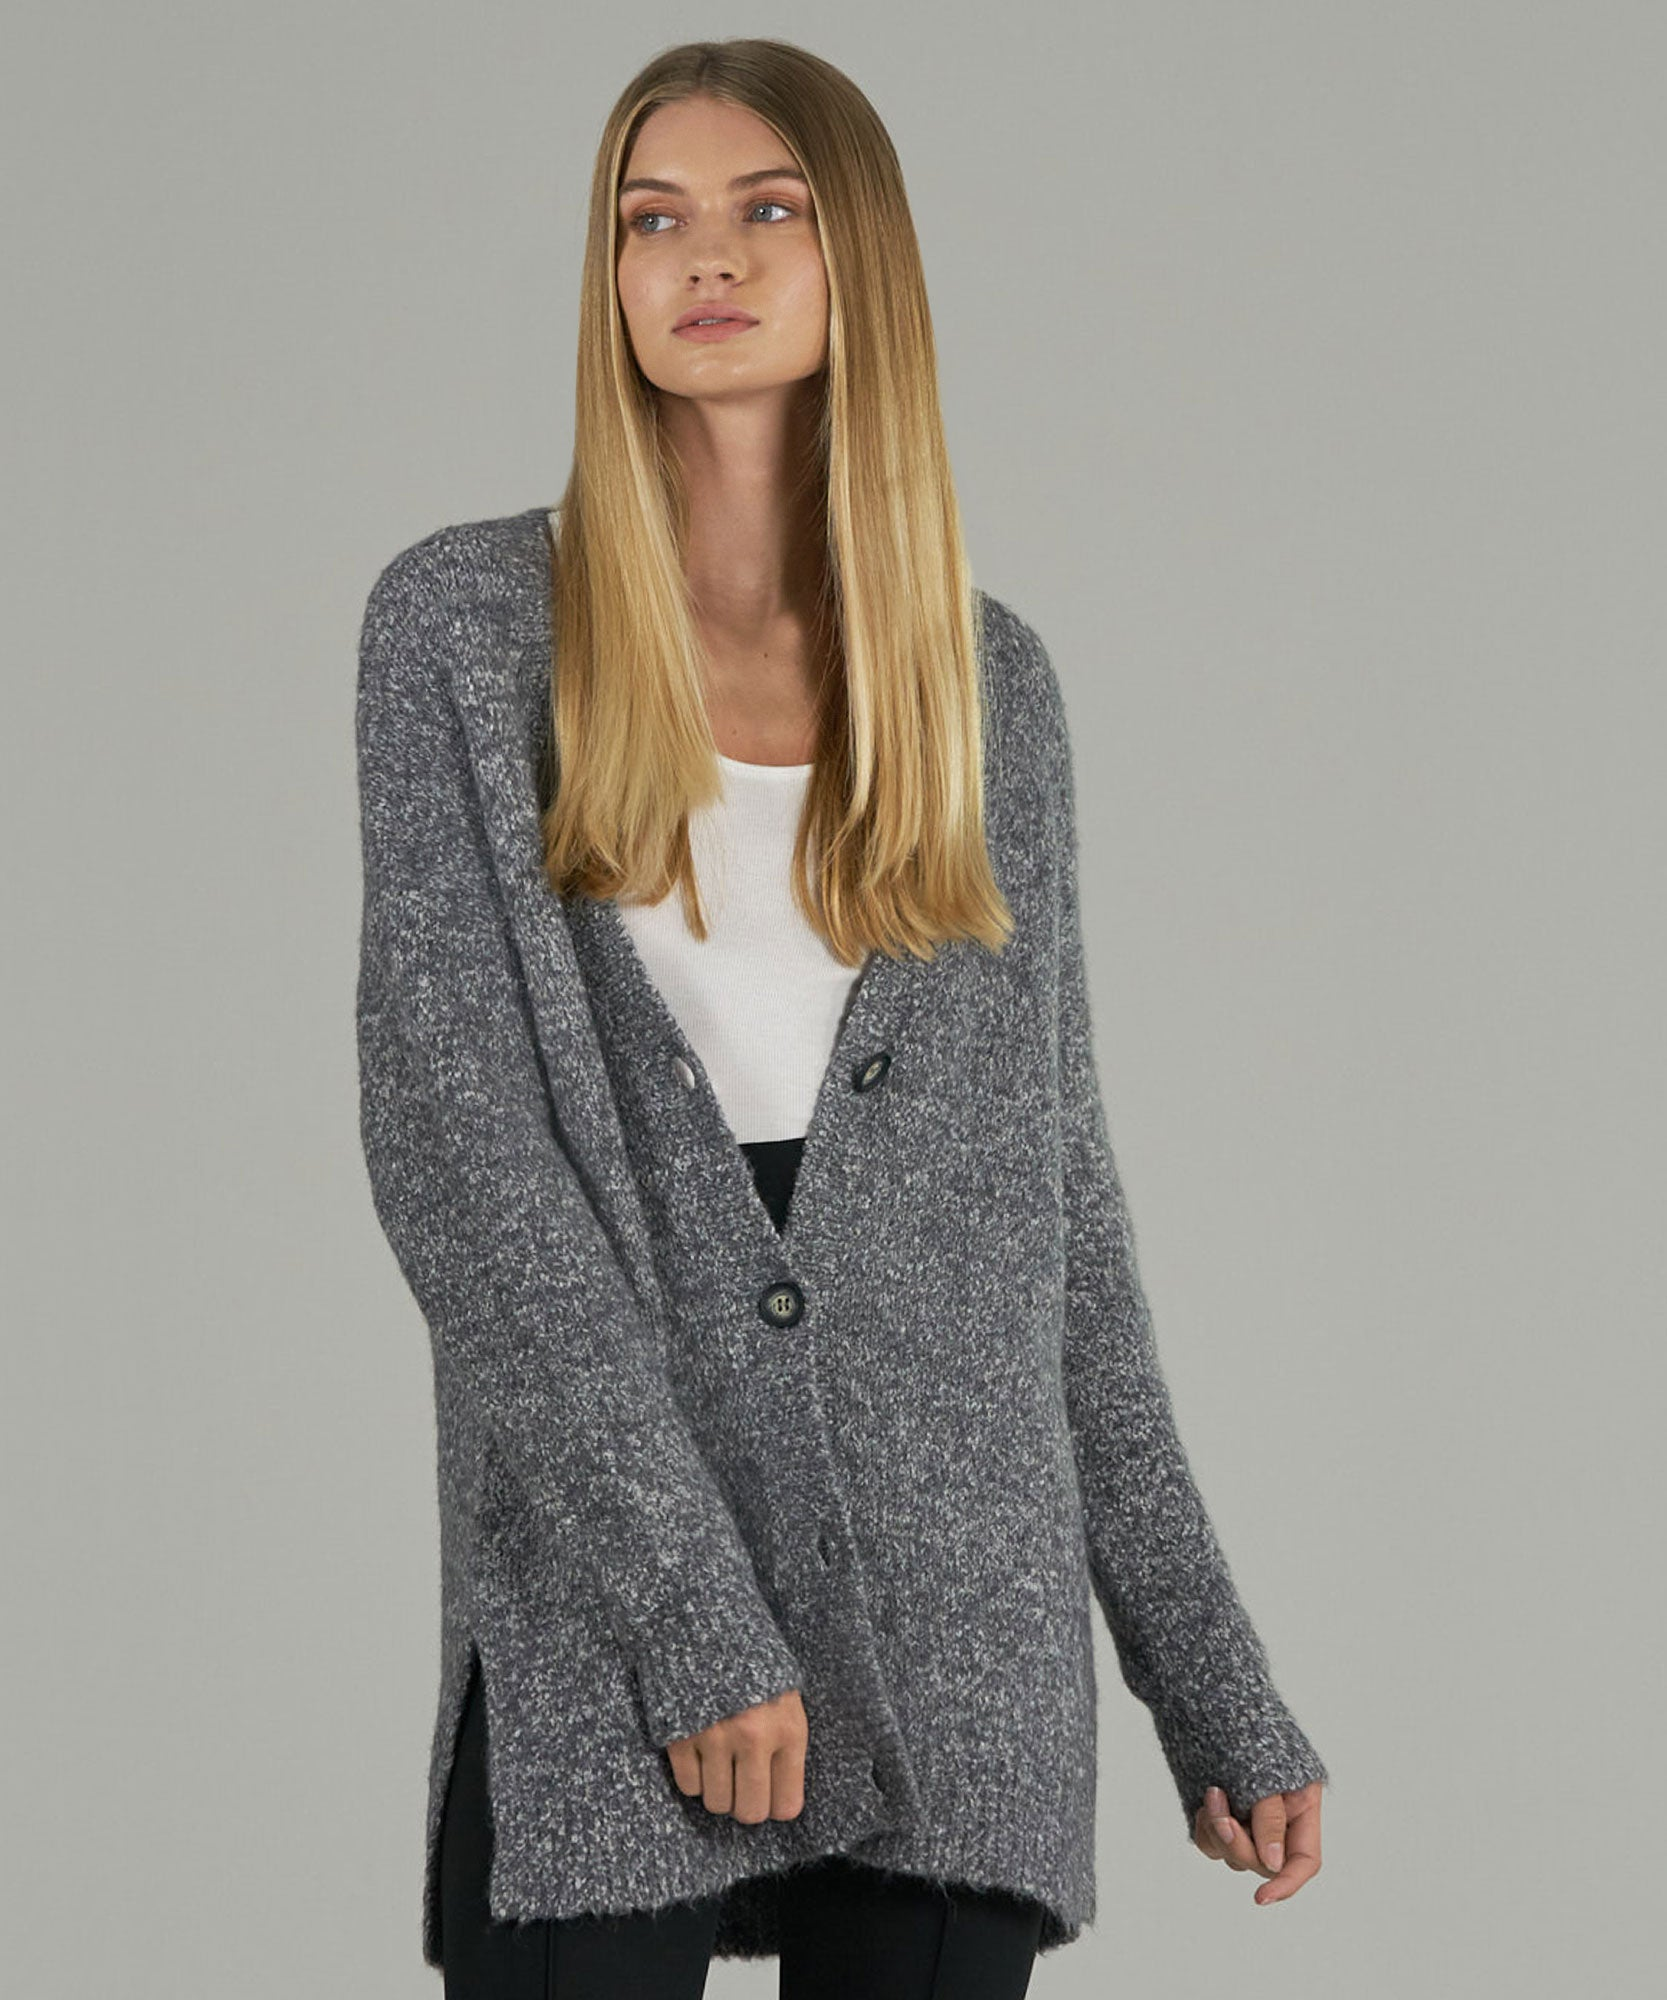 Grey Marled Cotton Blend Cardigan Sweater - Women's Sweater by ATM Anthony Thomas Melillo